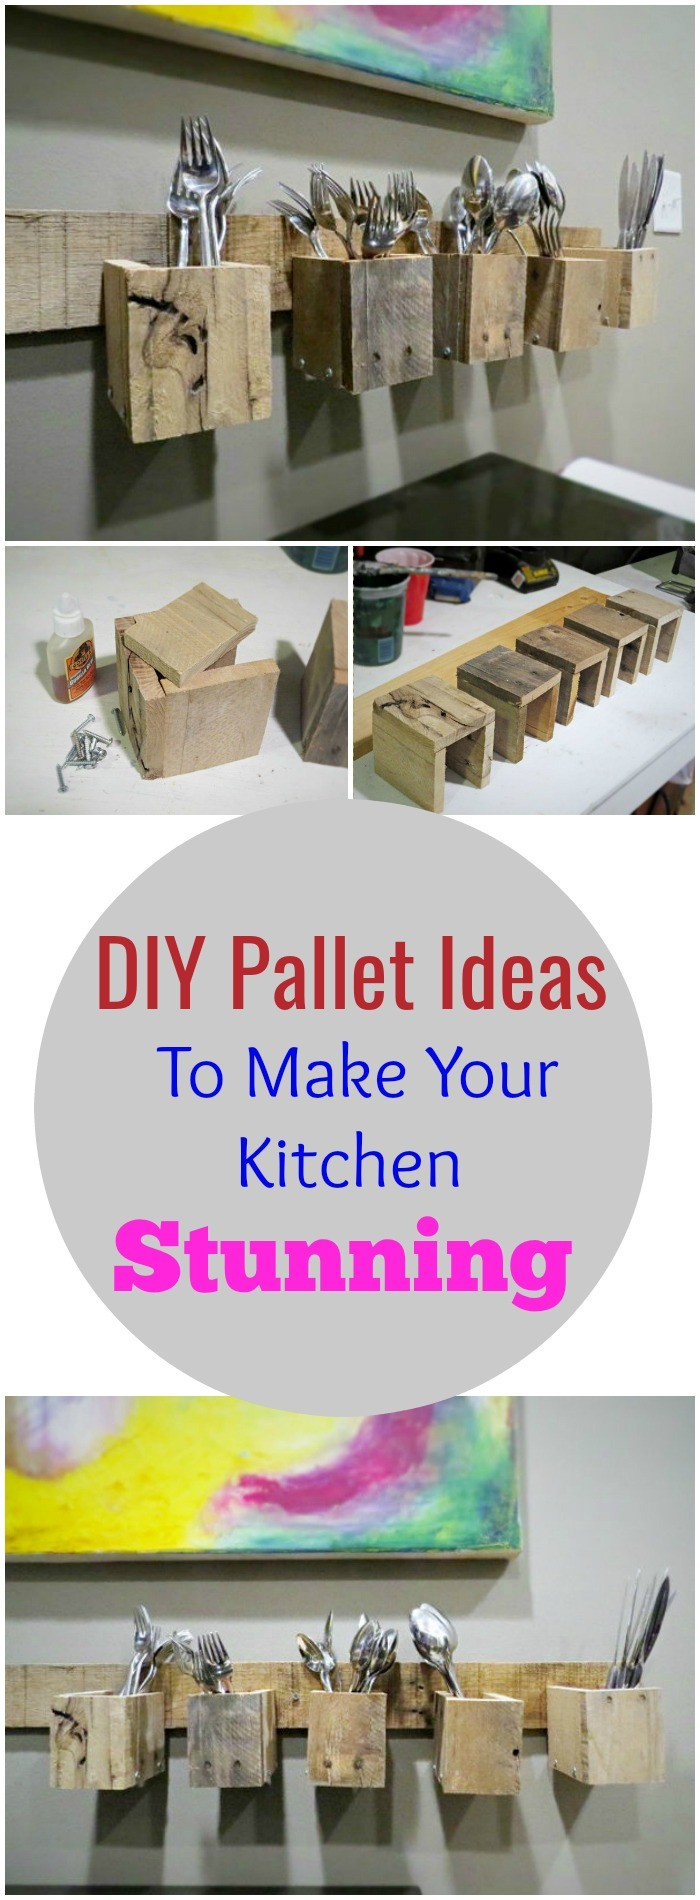 Pallet Wood Silverware Holder DIY Pallet Ideas To Make Your Kitchen Stunning